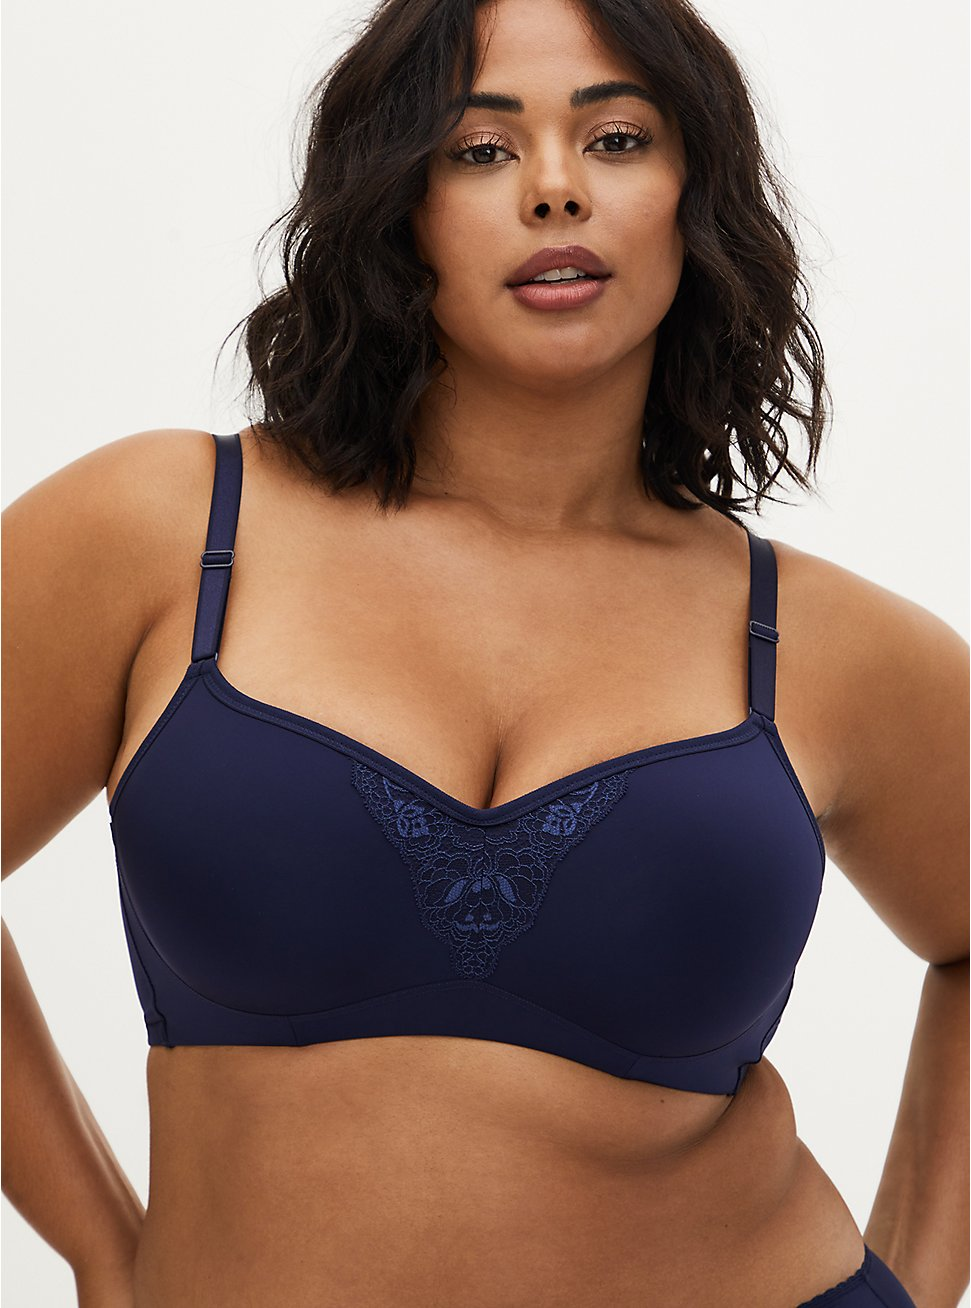 Navy Shine 360° Back Smoothing™ Lightly Lined Maximum Support Full Coverage Bra, , hi-res